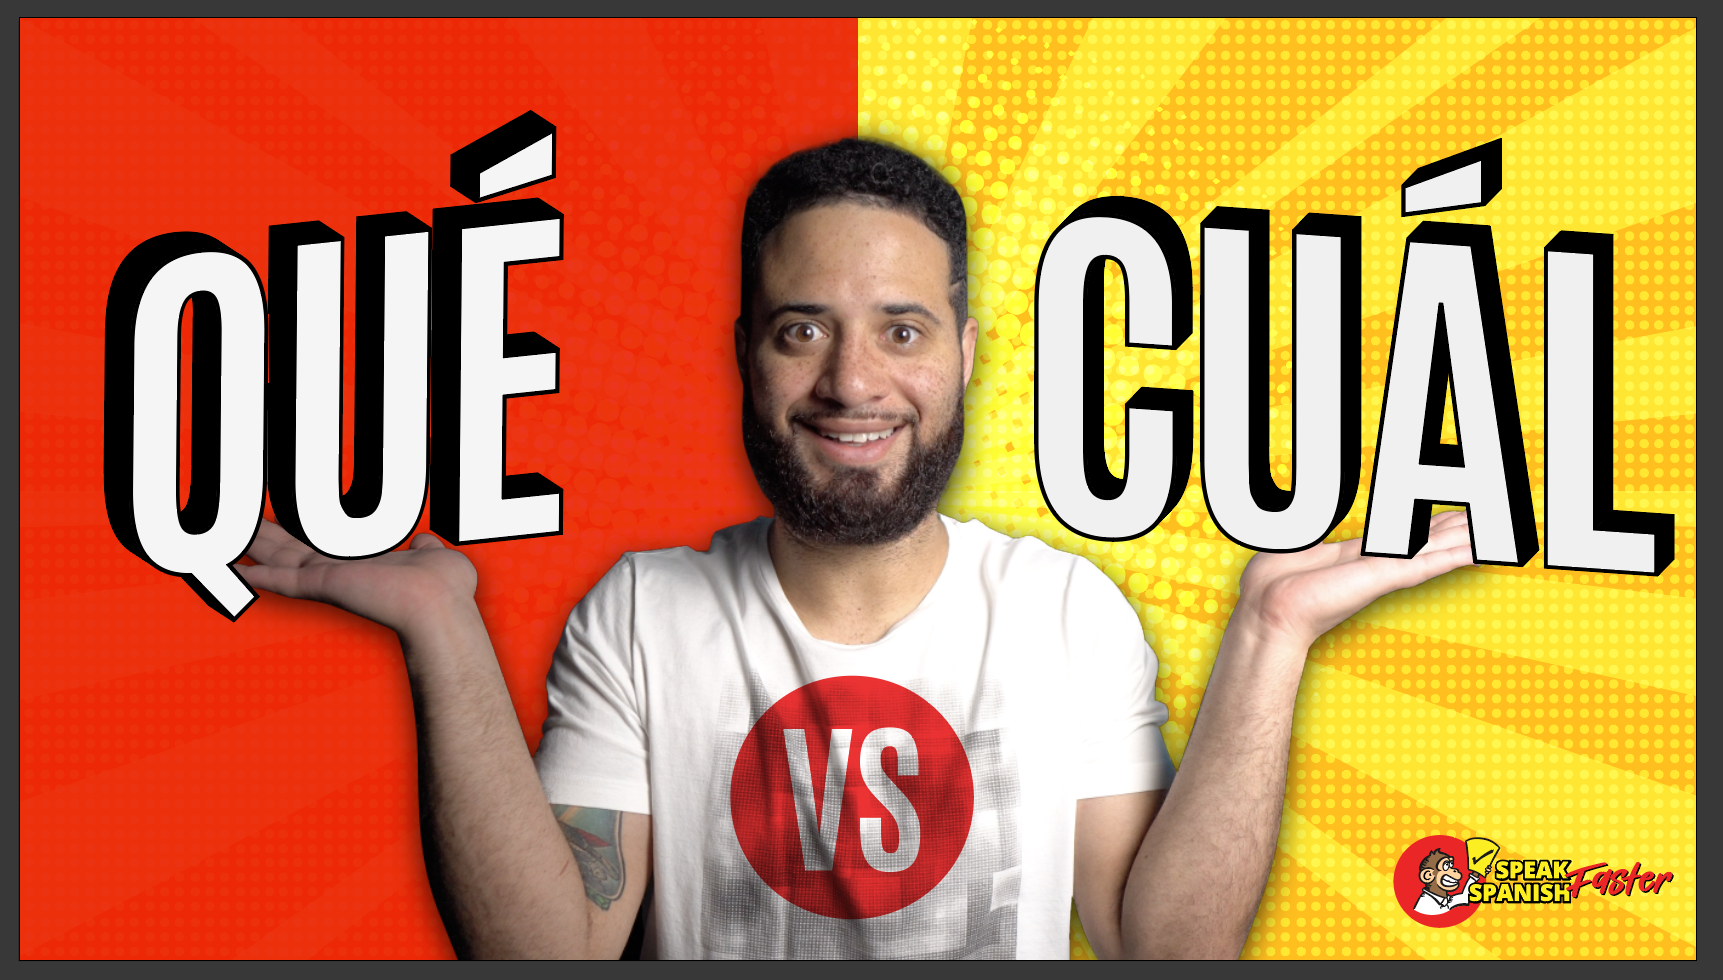 Qué vs Cuál - The Difference Between Cuál and Qué